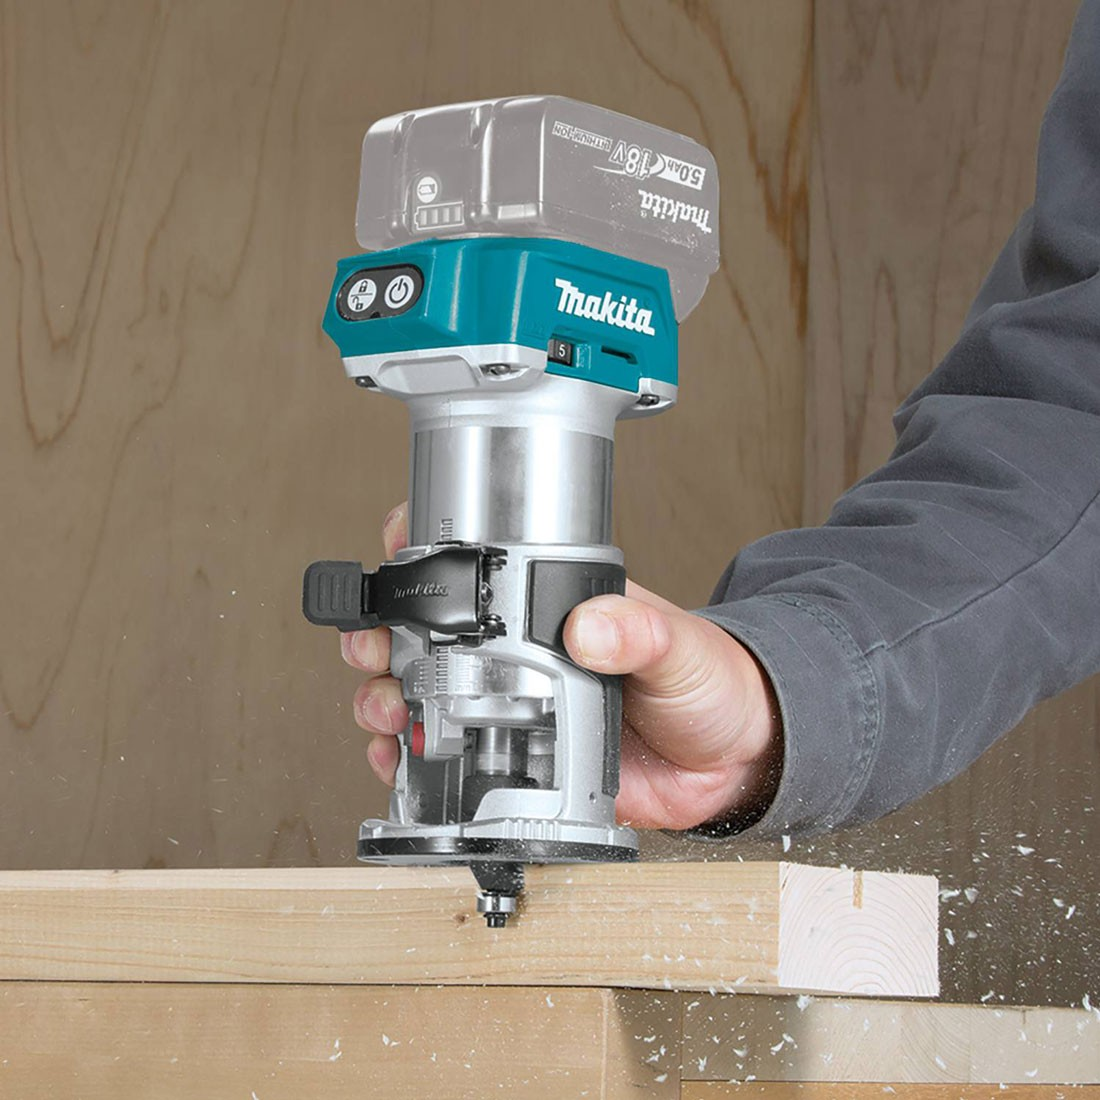 MAKPAC MAKITA DRT50ZJ 18V LXT CORDLESS LAMINATE TRIMMER BODY WITH ACCESSORIES